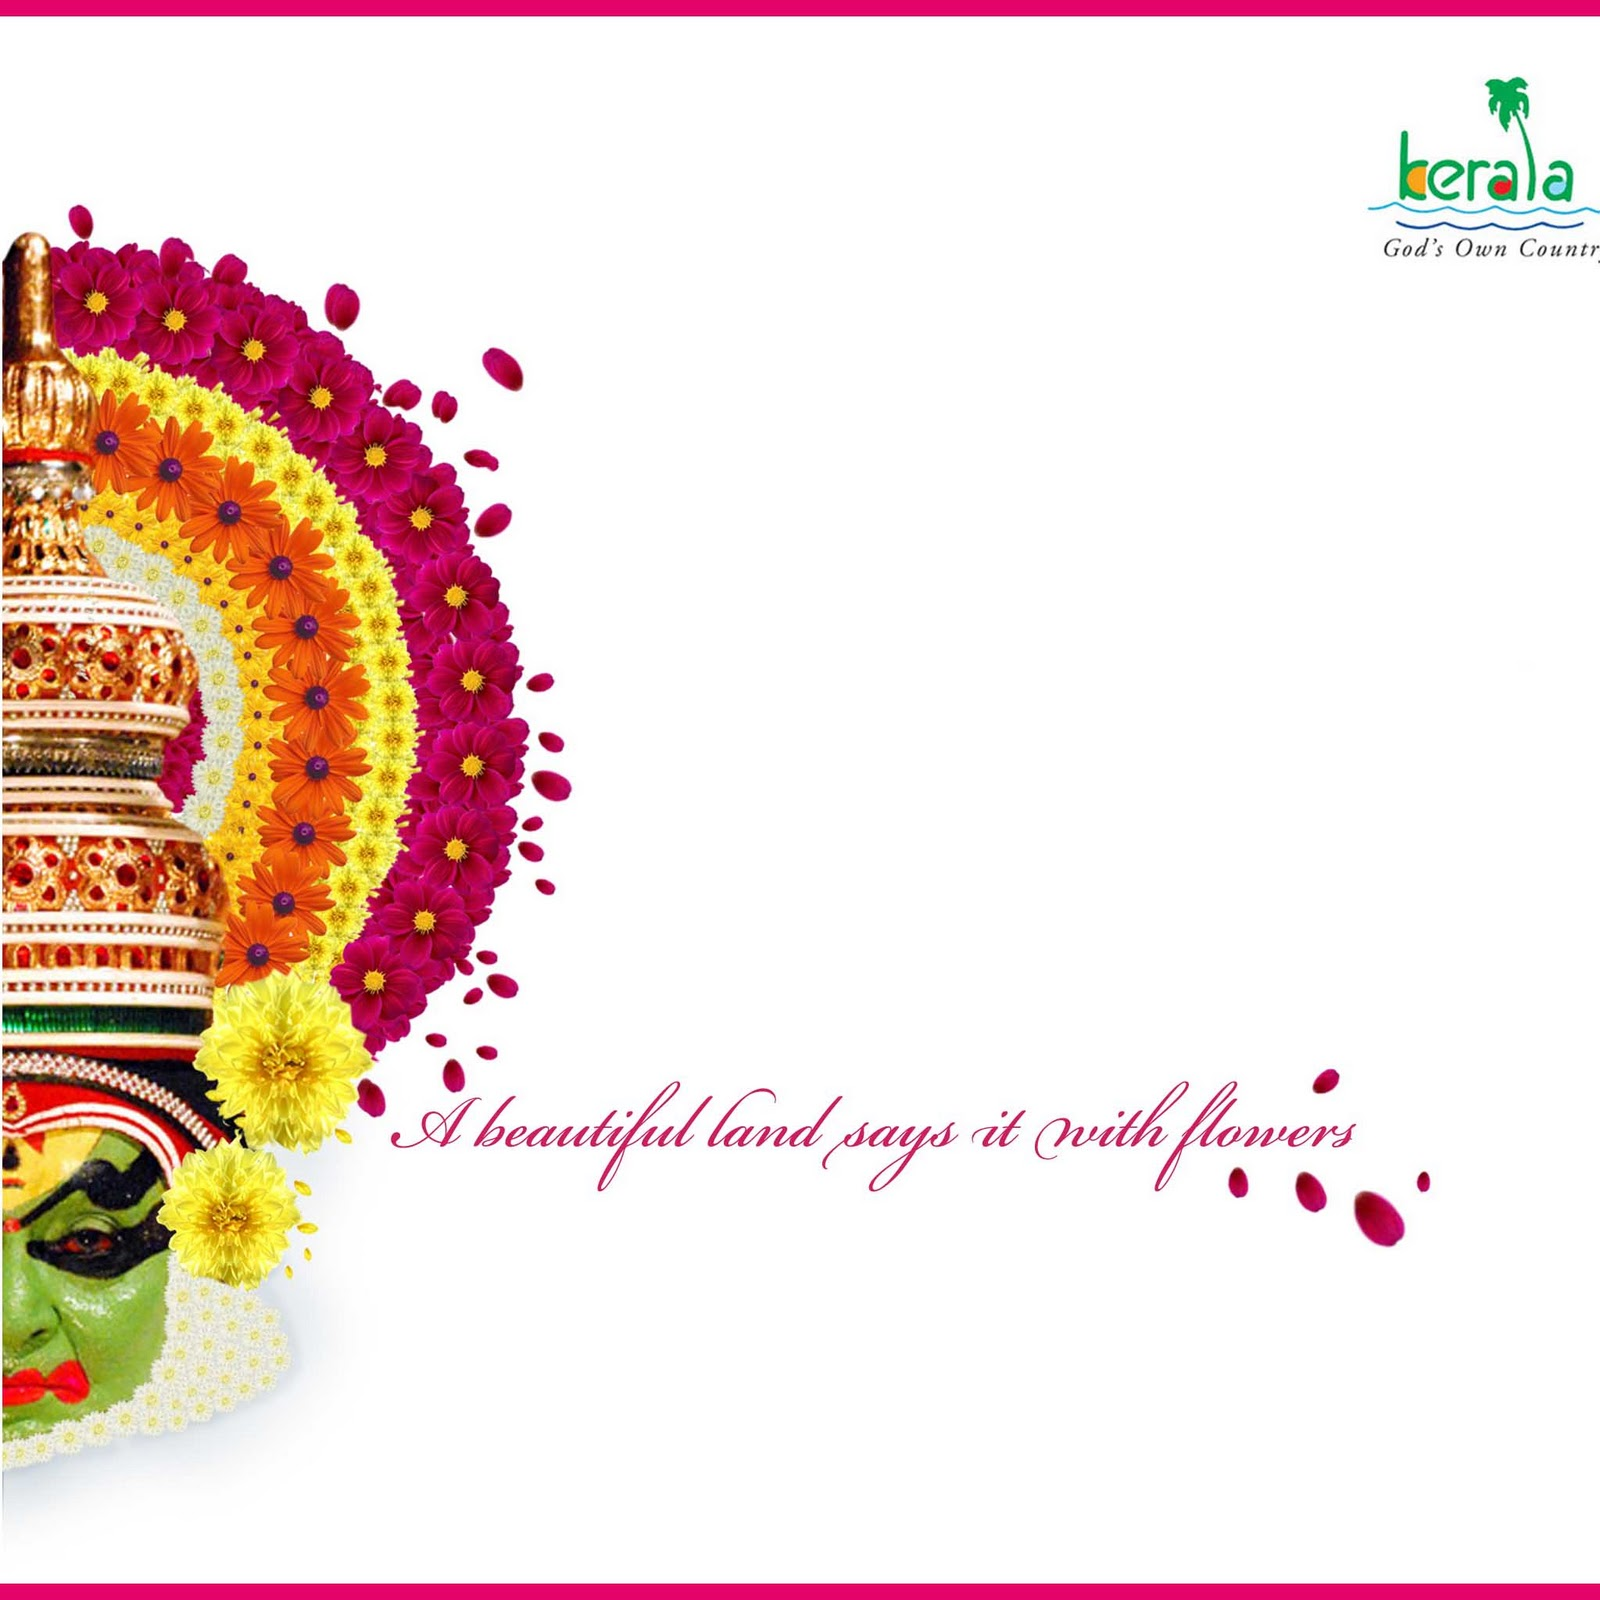 15 Best Images About Kerala Tourism: Creative Design Area: Kerala Tourism Onam Greeting Card 2010